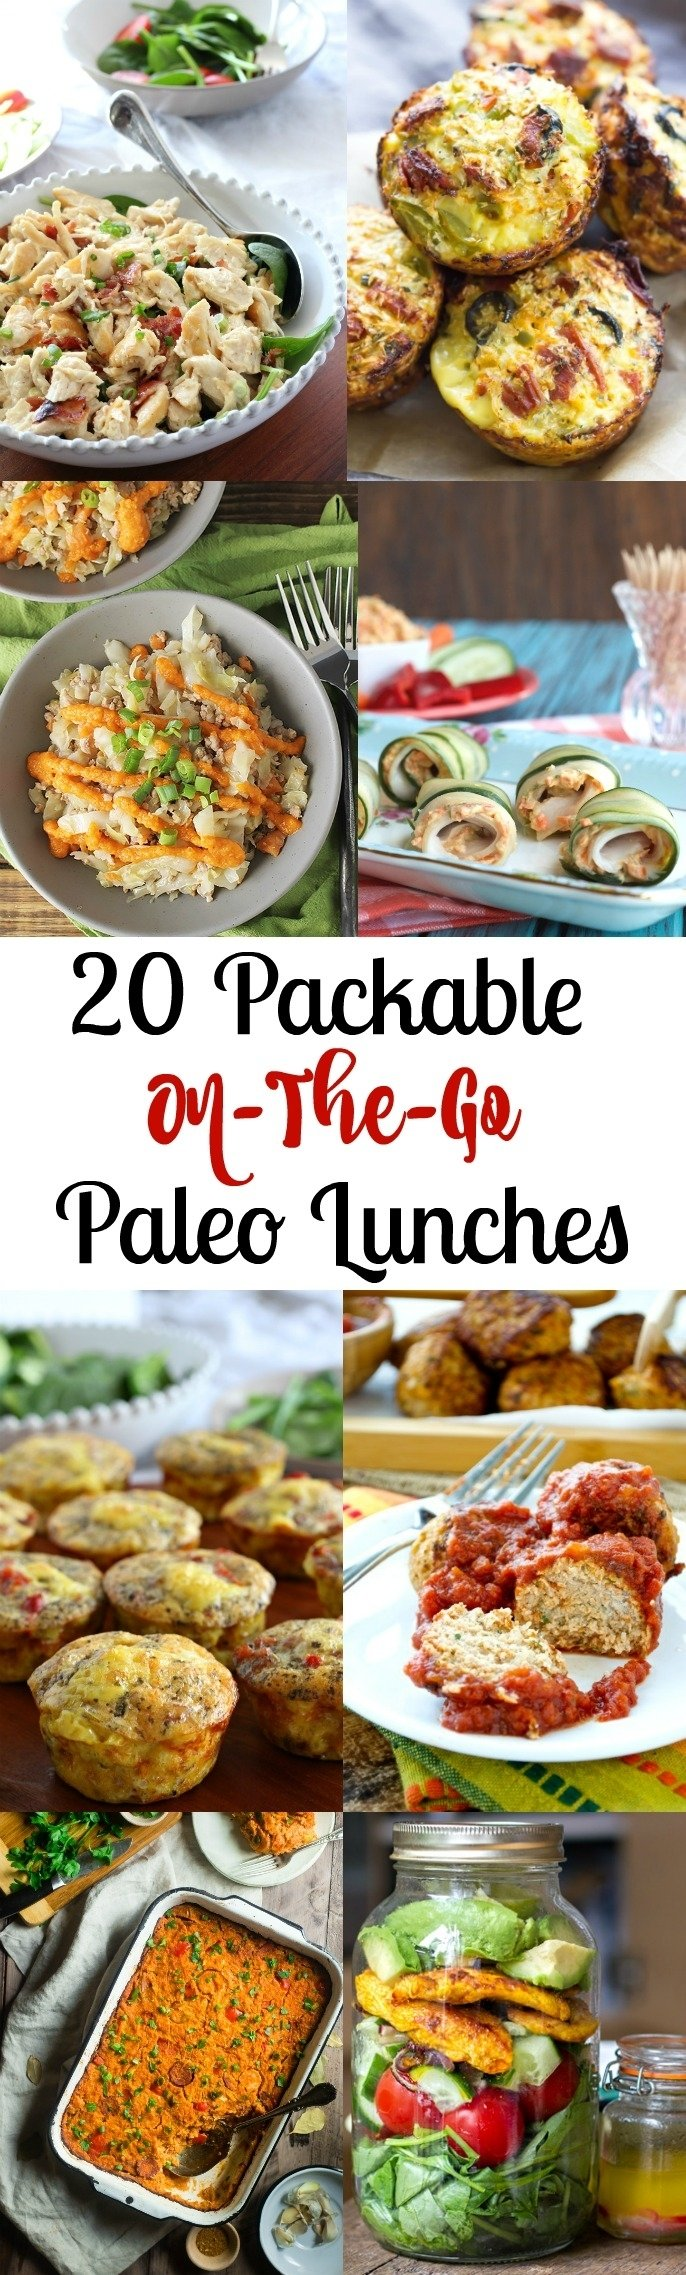 10 Lovable Paleo Lunch Ideas For Work 20 packable on the go paleo lunches the paleo running momma 1 2020